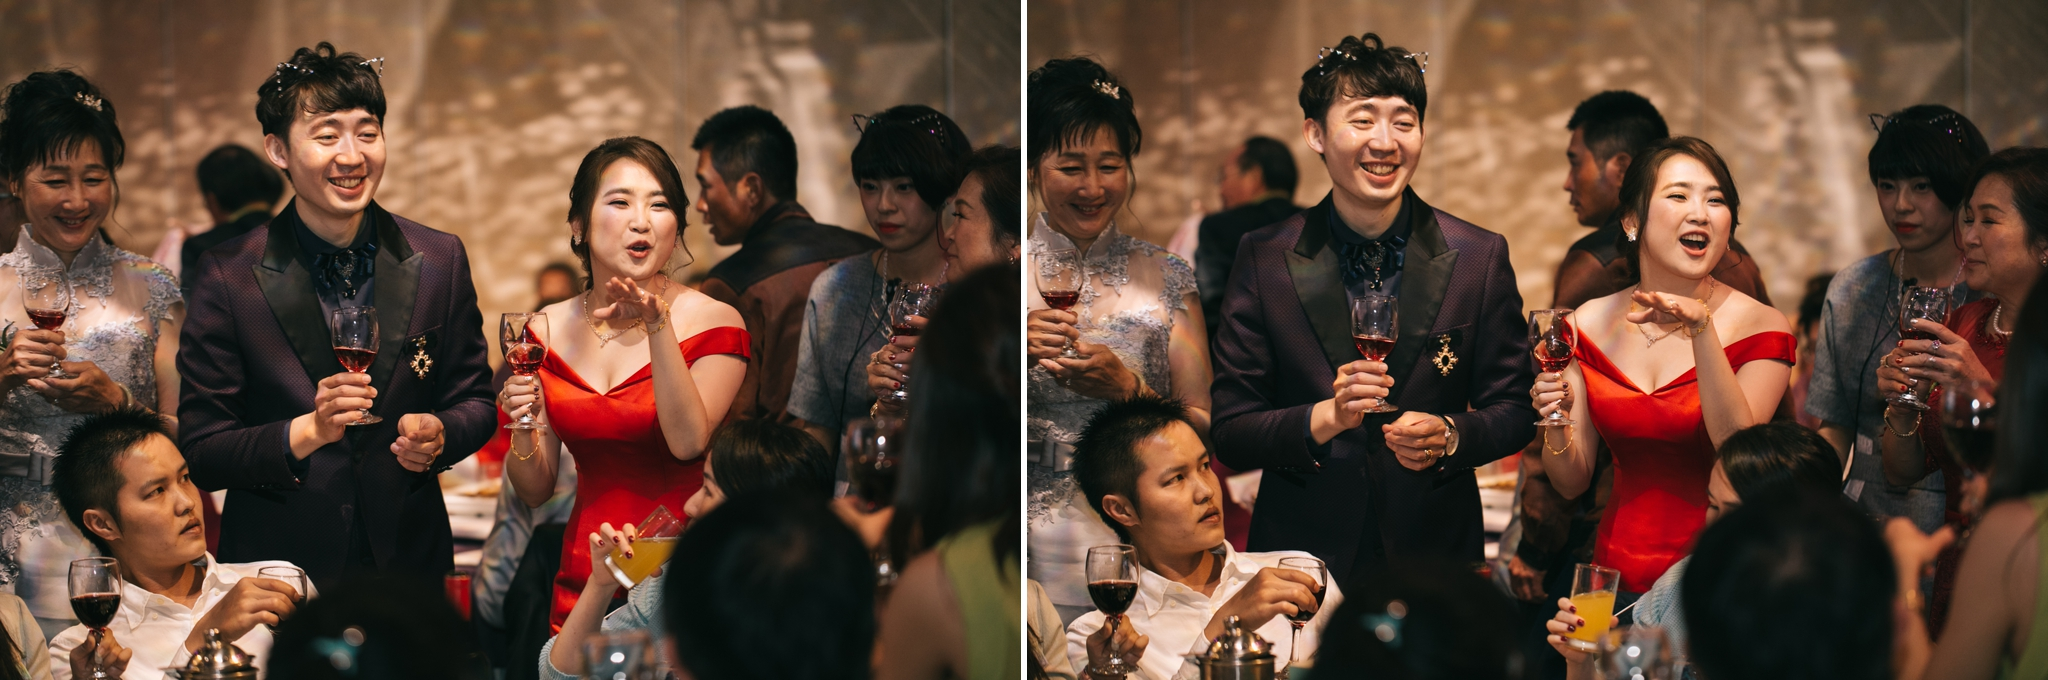 Keddy+Richard-wedding-新莊頤品飯店-221.jpg